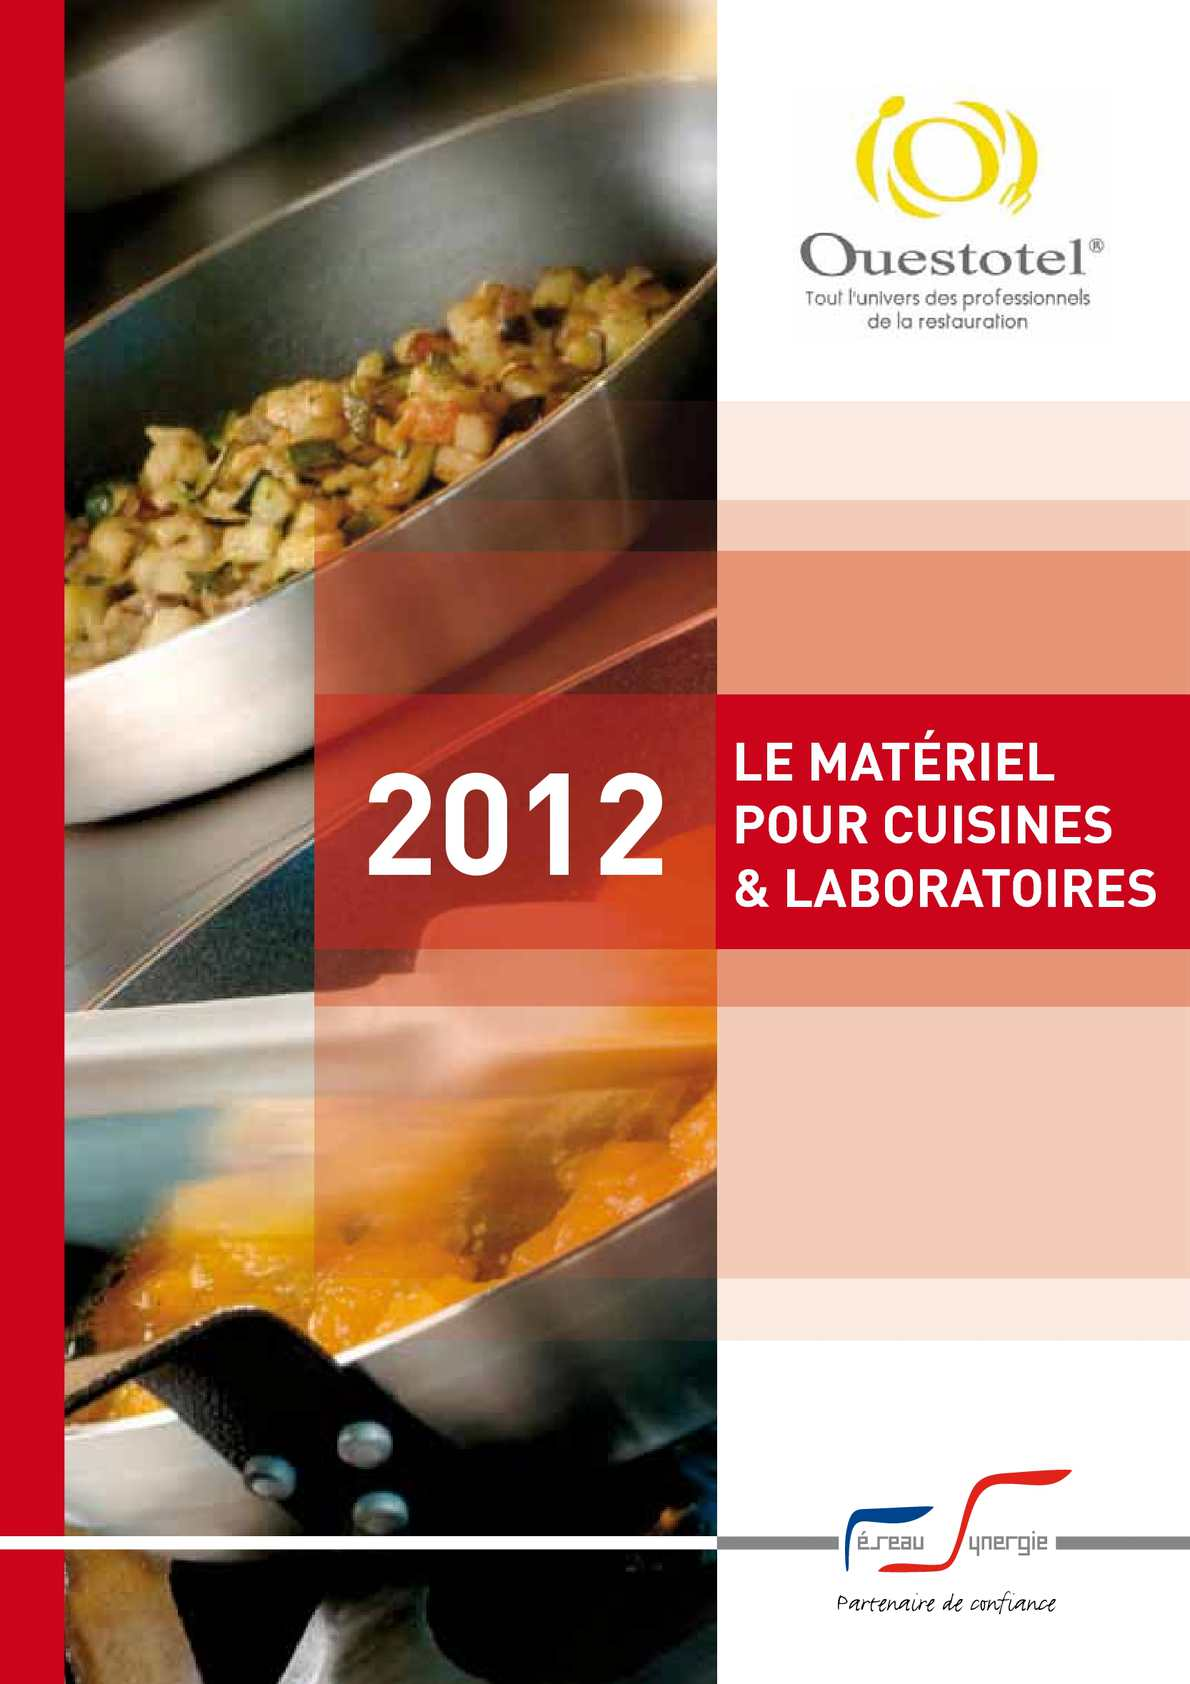 Planche Découper Antidérapage Classification Coupe Cuisine Chef Billot Tool Neuf